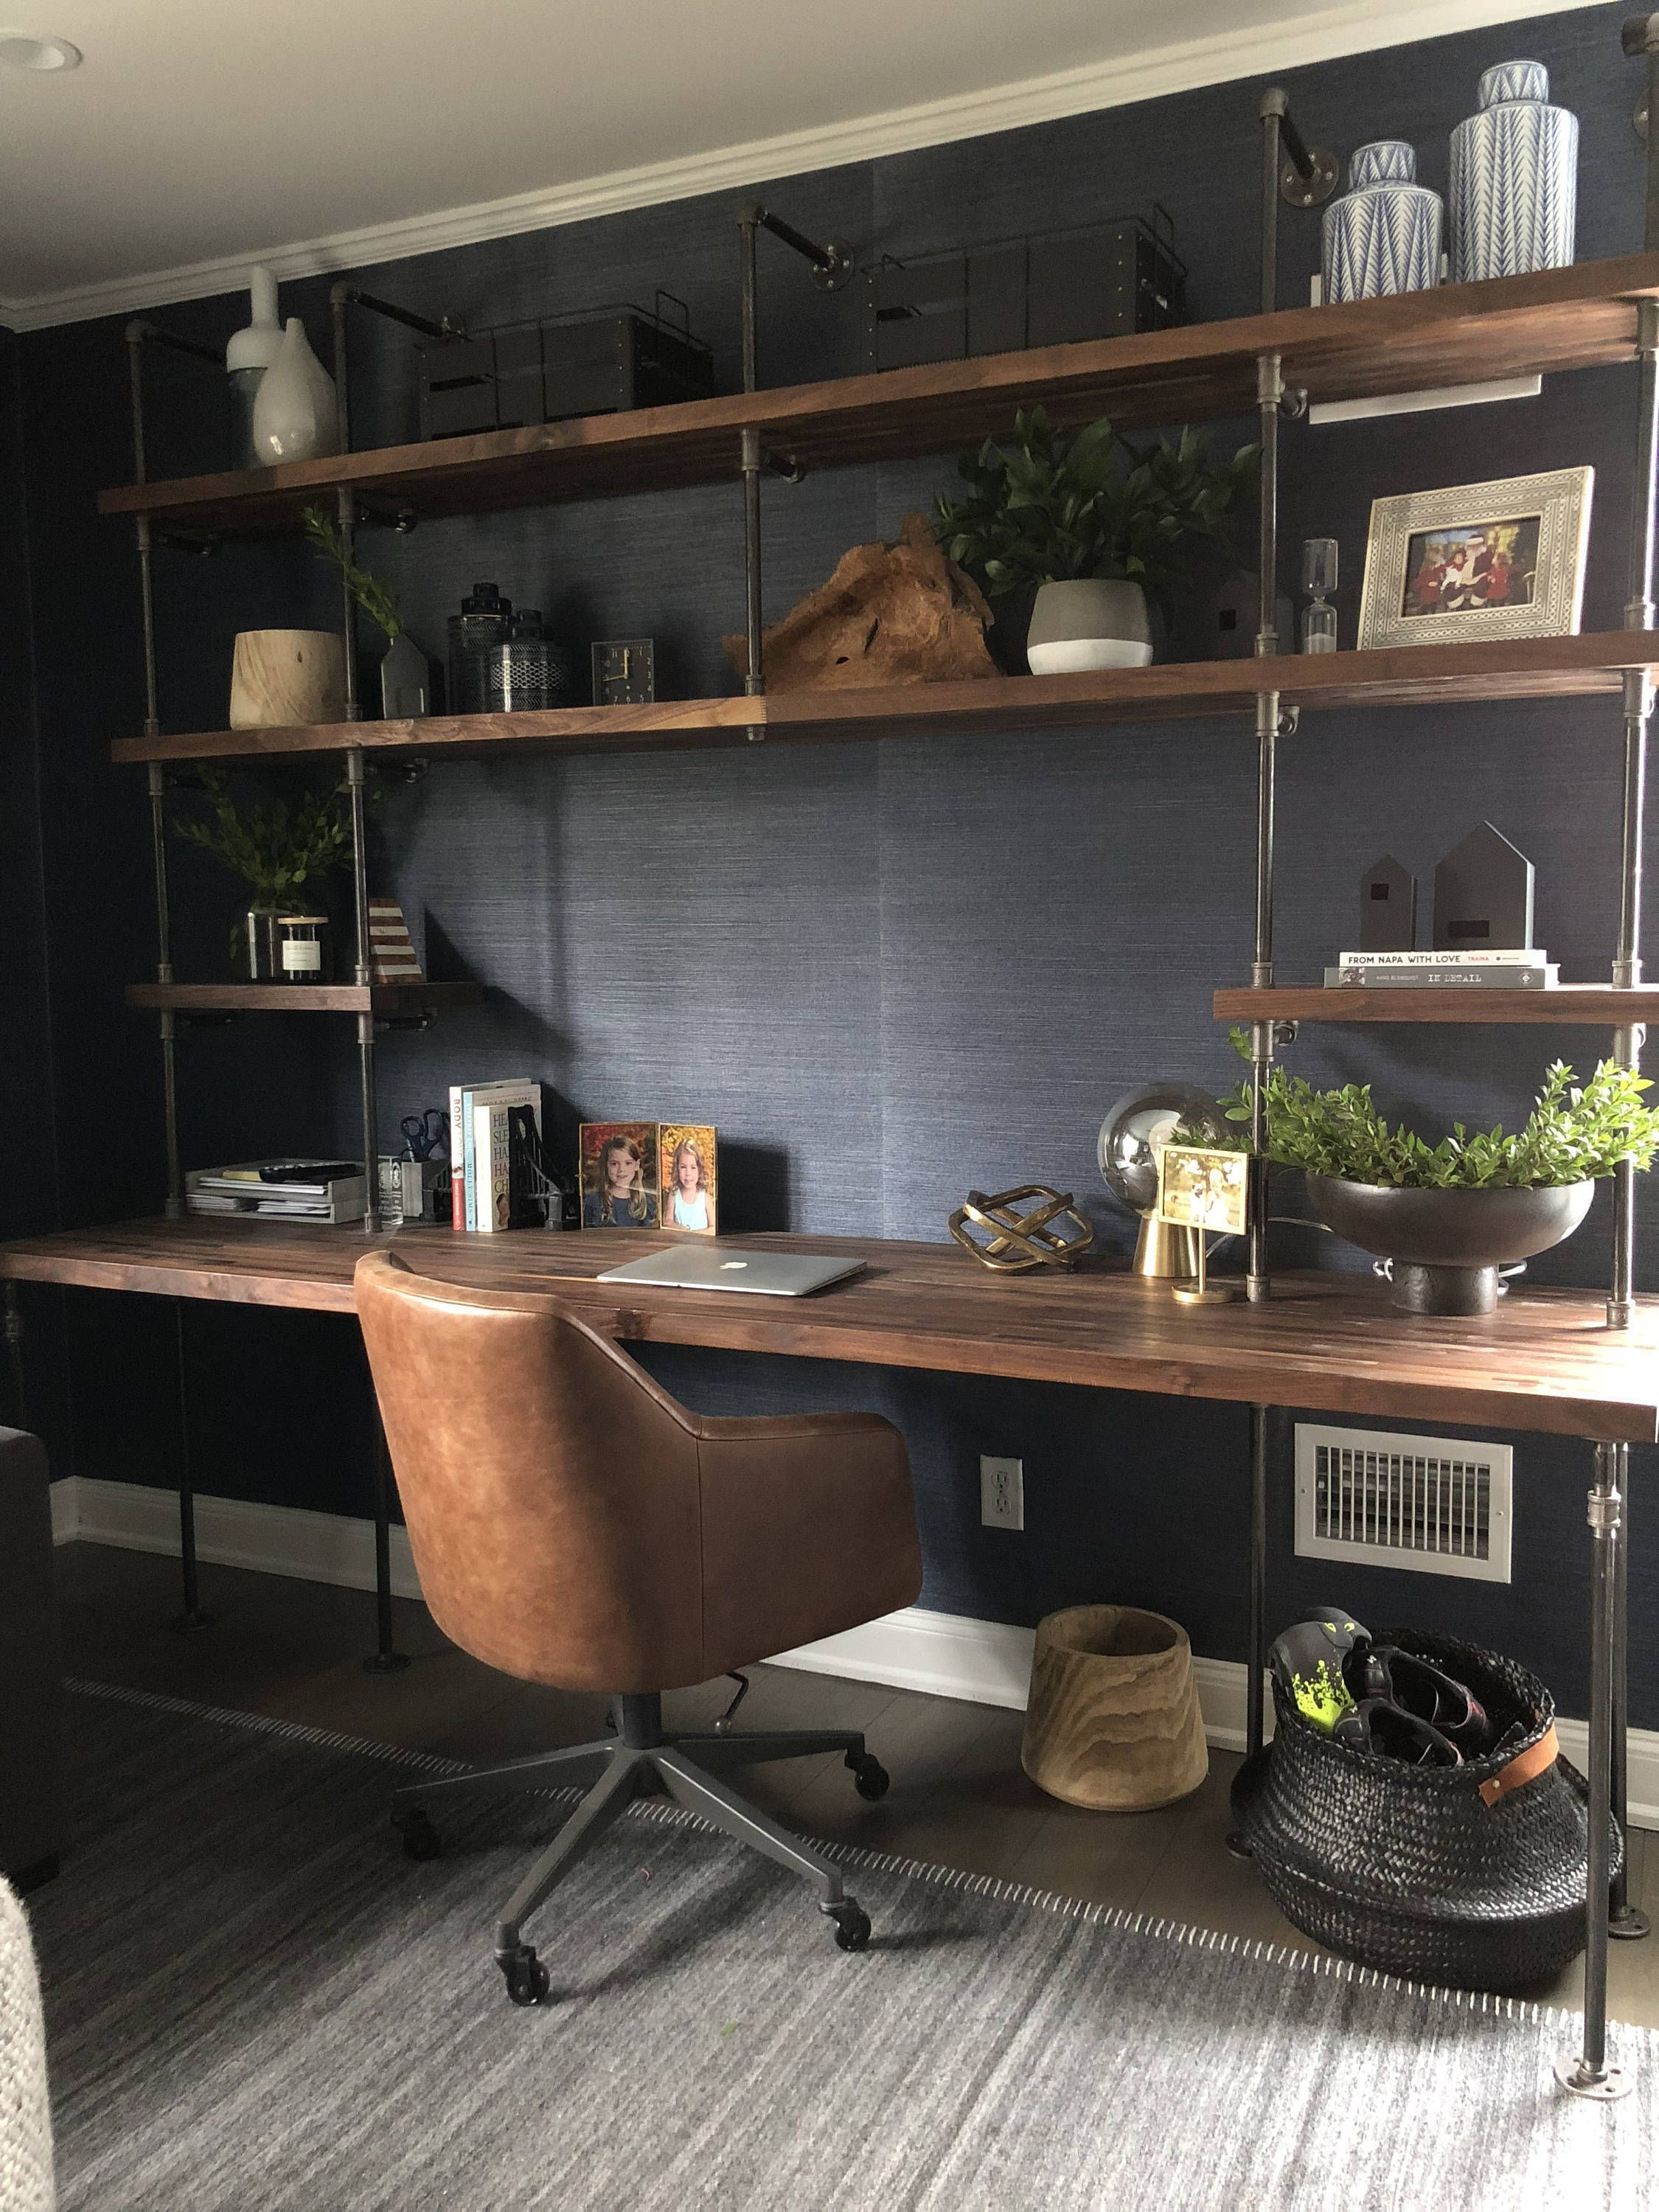 Top 10 Stunning Home Office Layout Homeoffice Homeofficededuction Homeofficeikea Homeofficesetup Office Desk Designs Home Office Furniture Home Office Decor